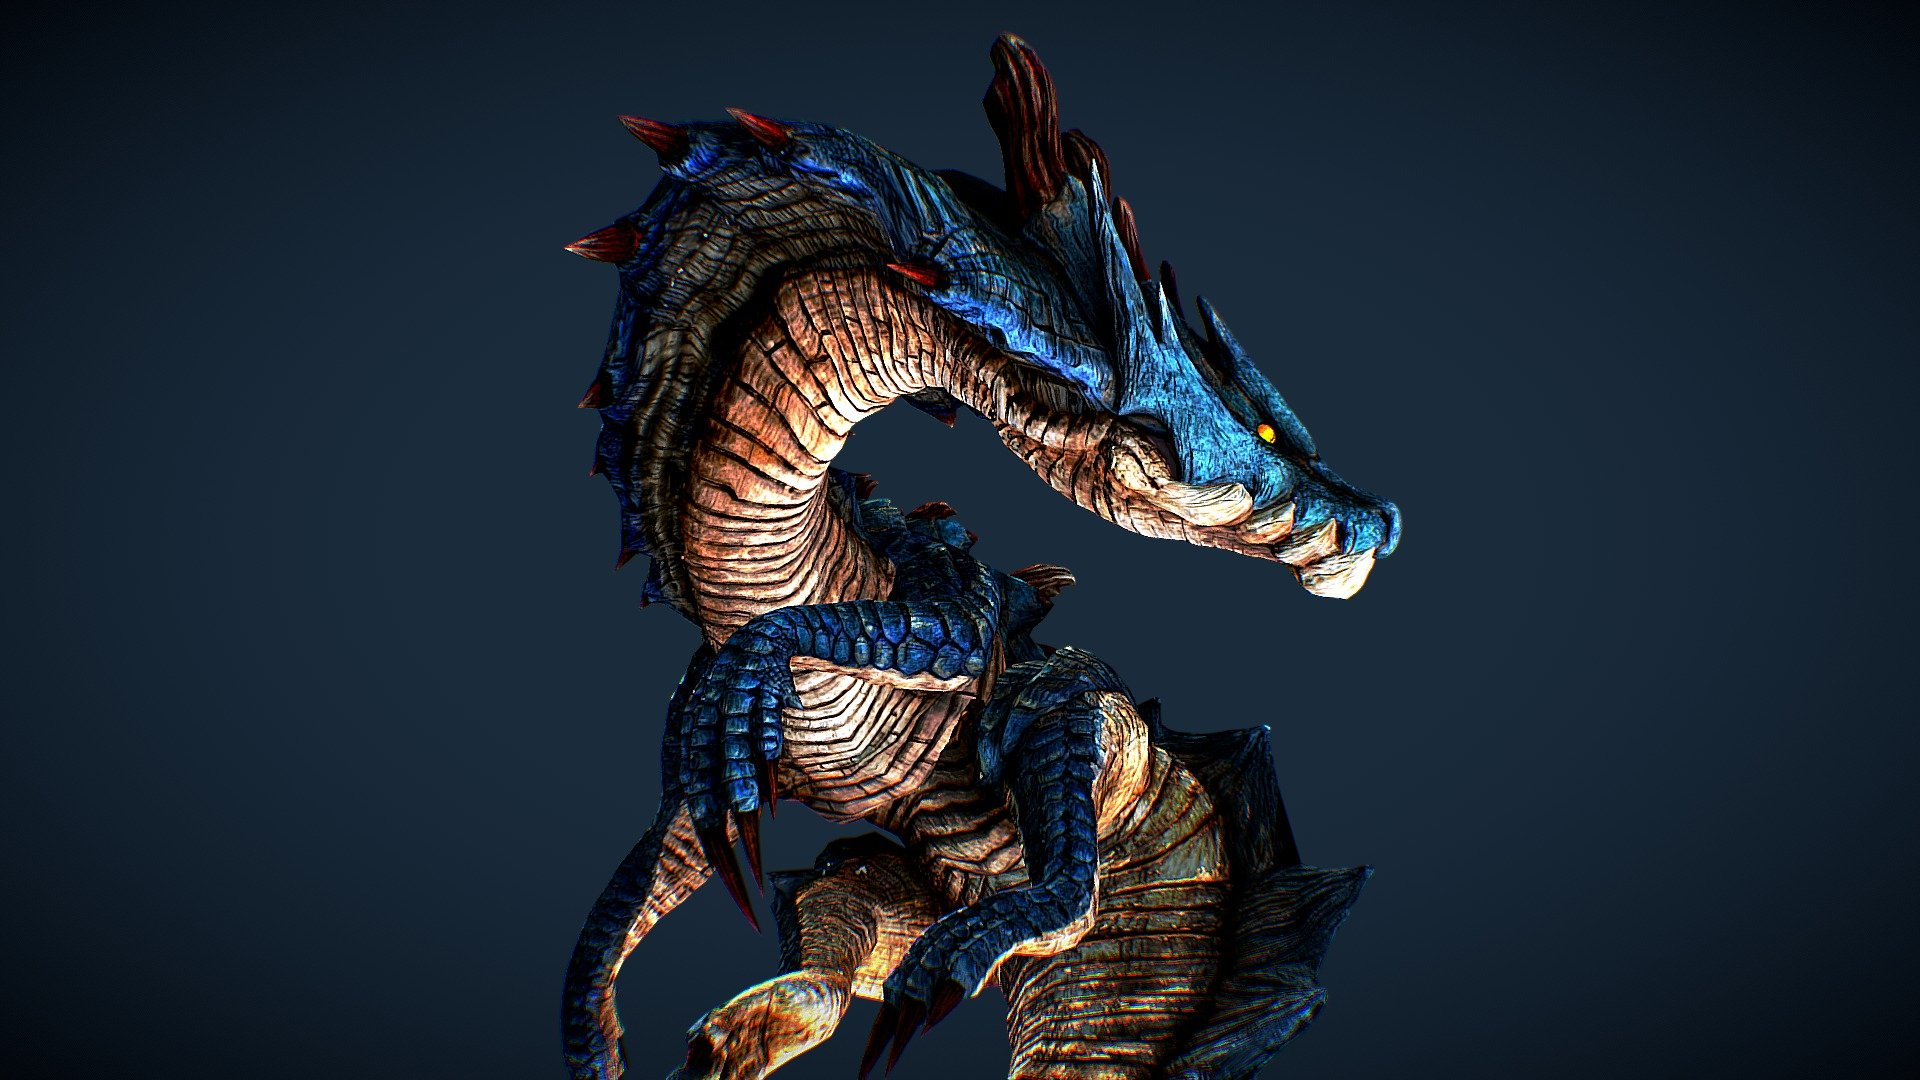 Monster Hunter Lagiacrus 3d Model By Jet Ong Jet Ong 0cf3f8e Sketchfab Lagiacrus is more difficult in the water. monster hunter lagiacrus 3d model by